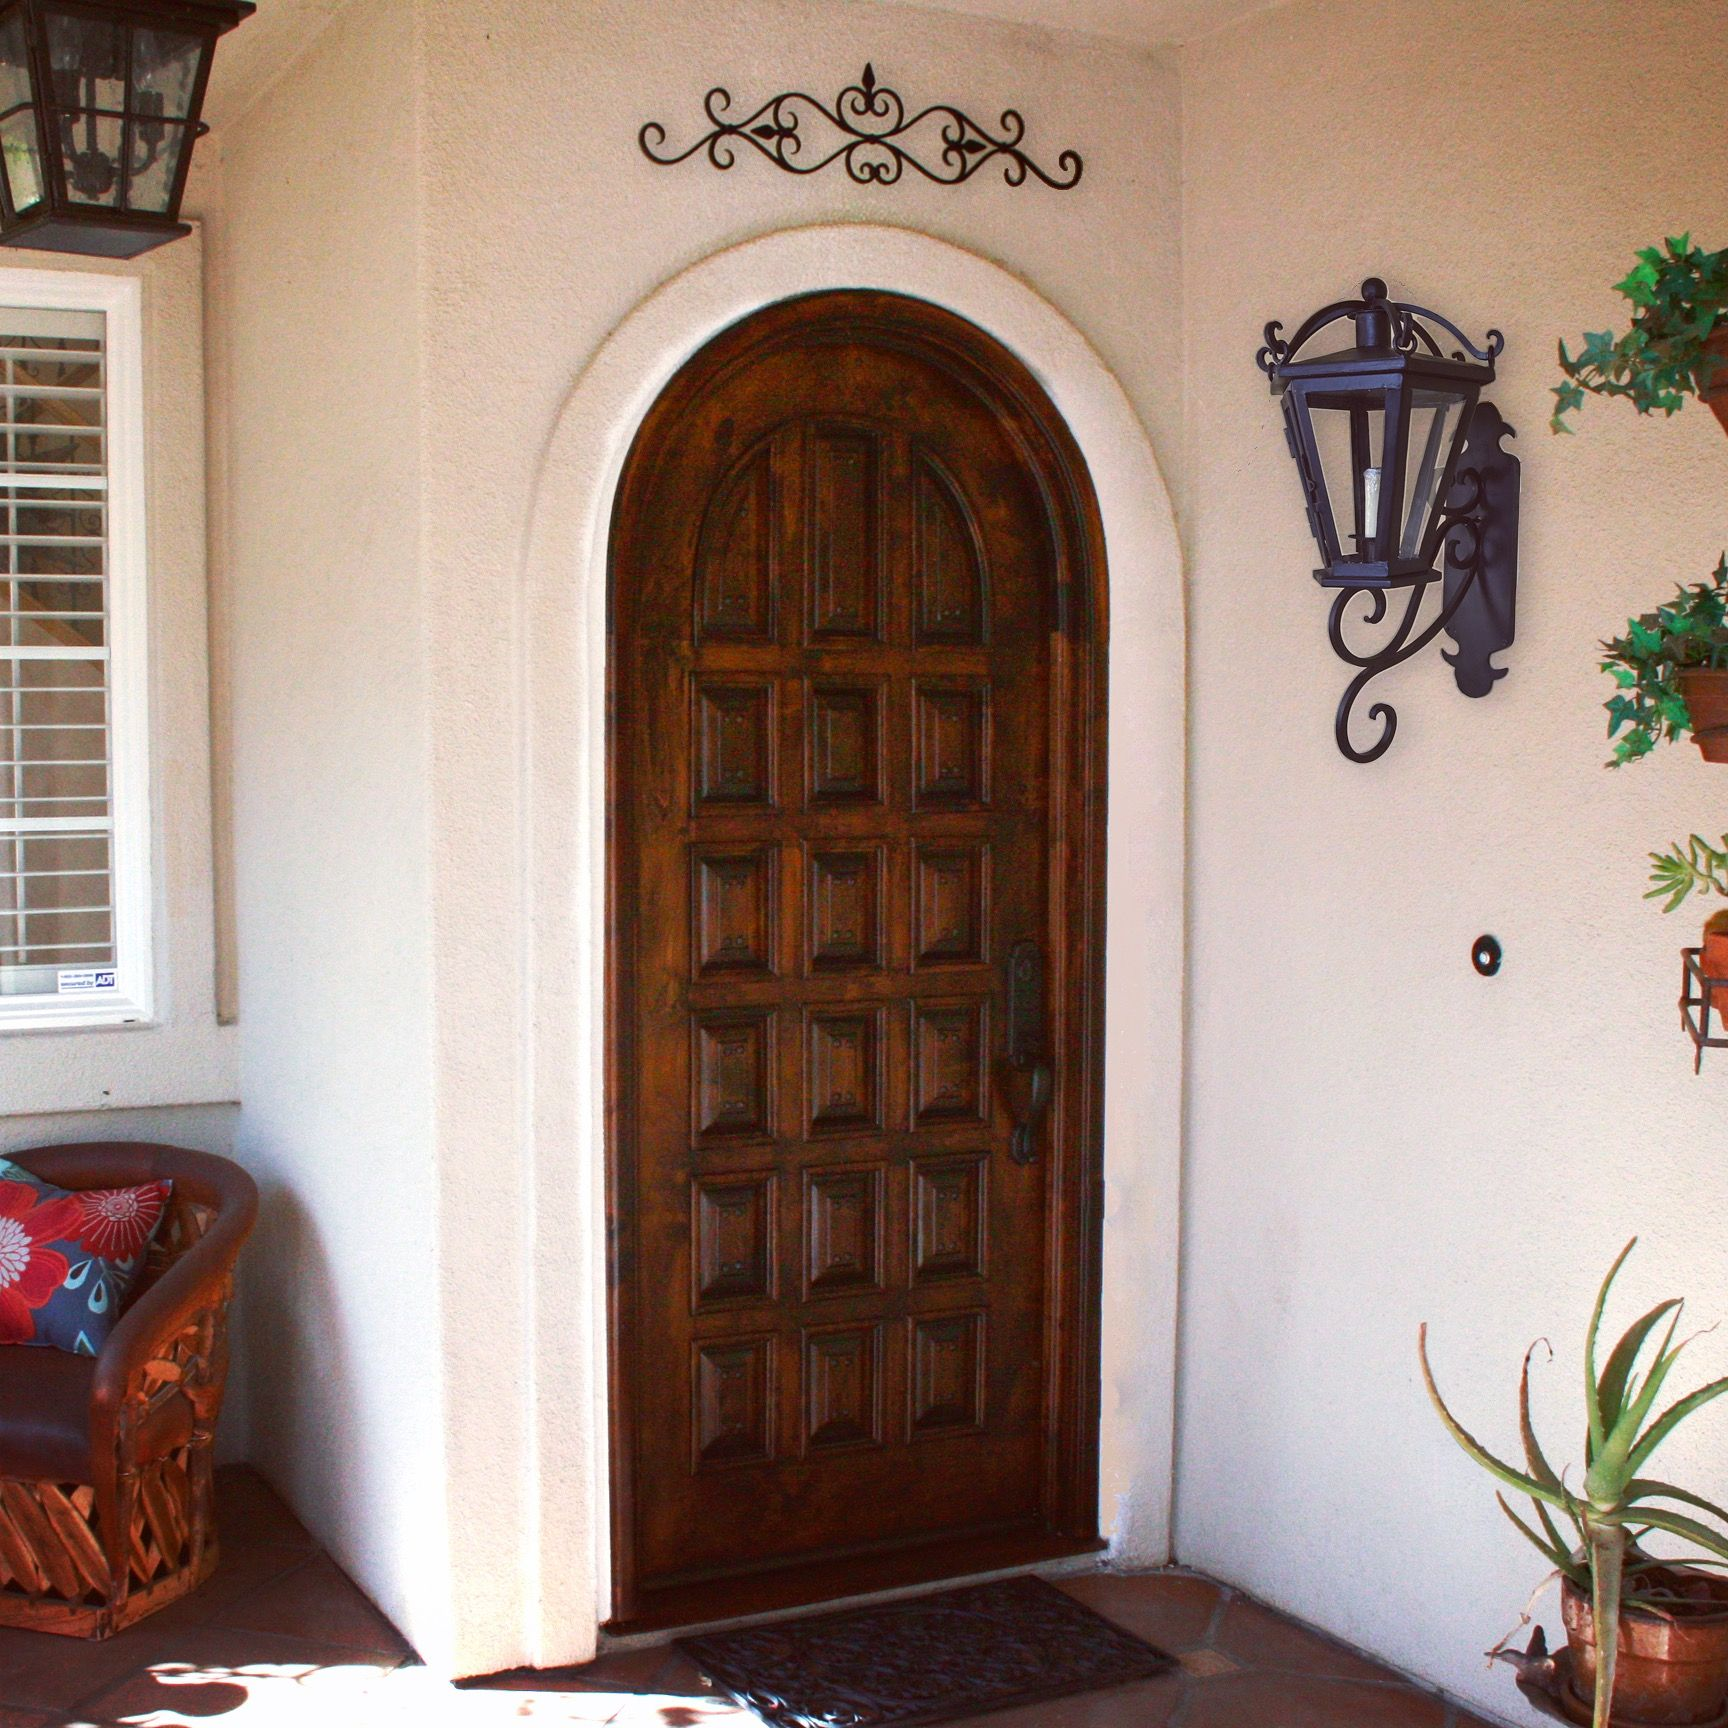 A classic, Spanish entry door stands out in this suburban, Southern California home!